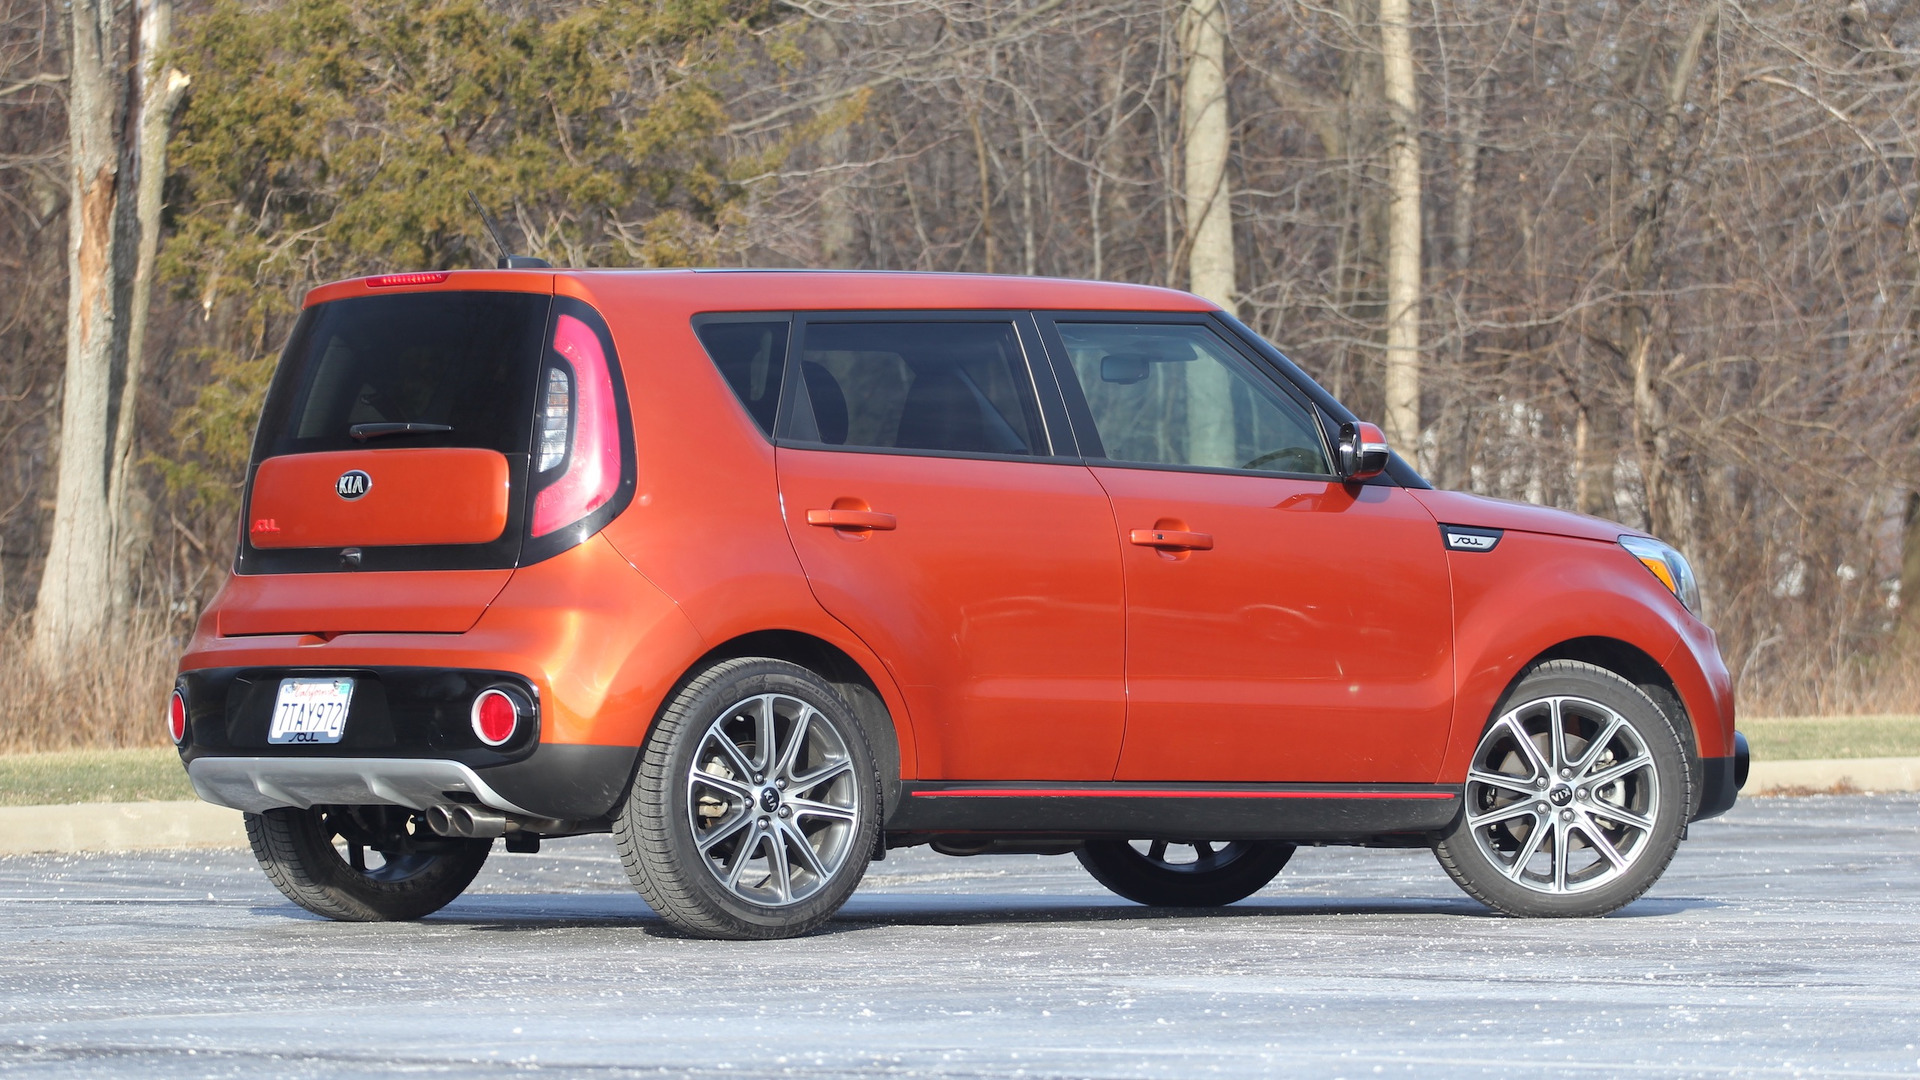 chatham kia new ontario sale in tires inventory for soul